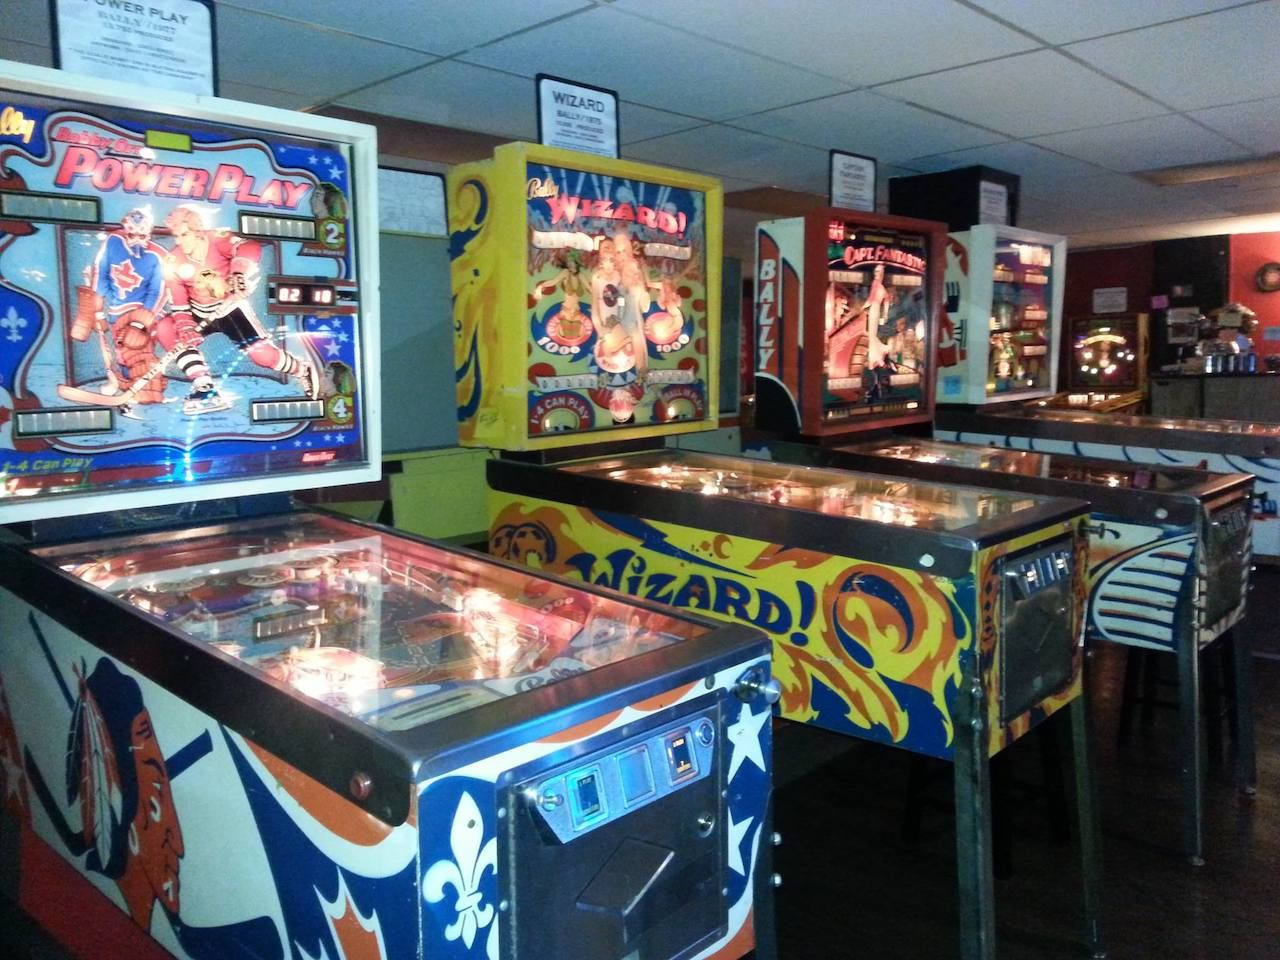 Pinball machines at the Pinball Museum in Asheville, North Carolina